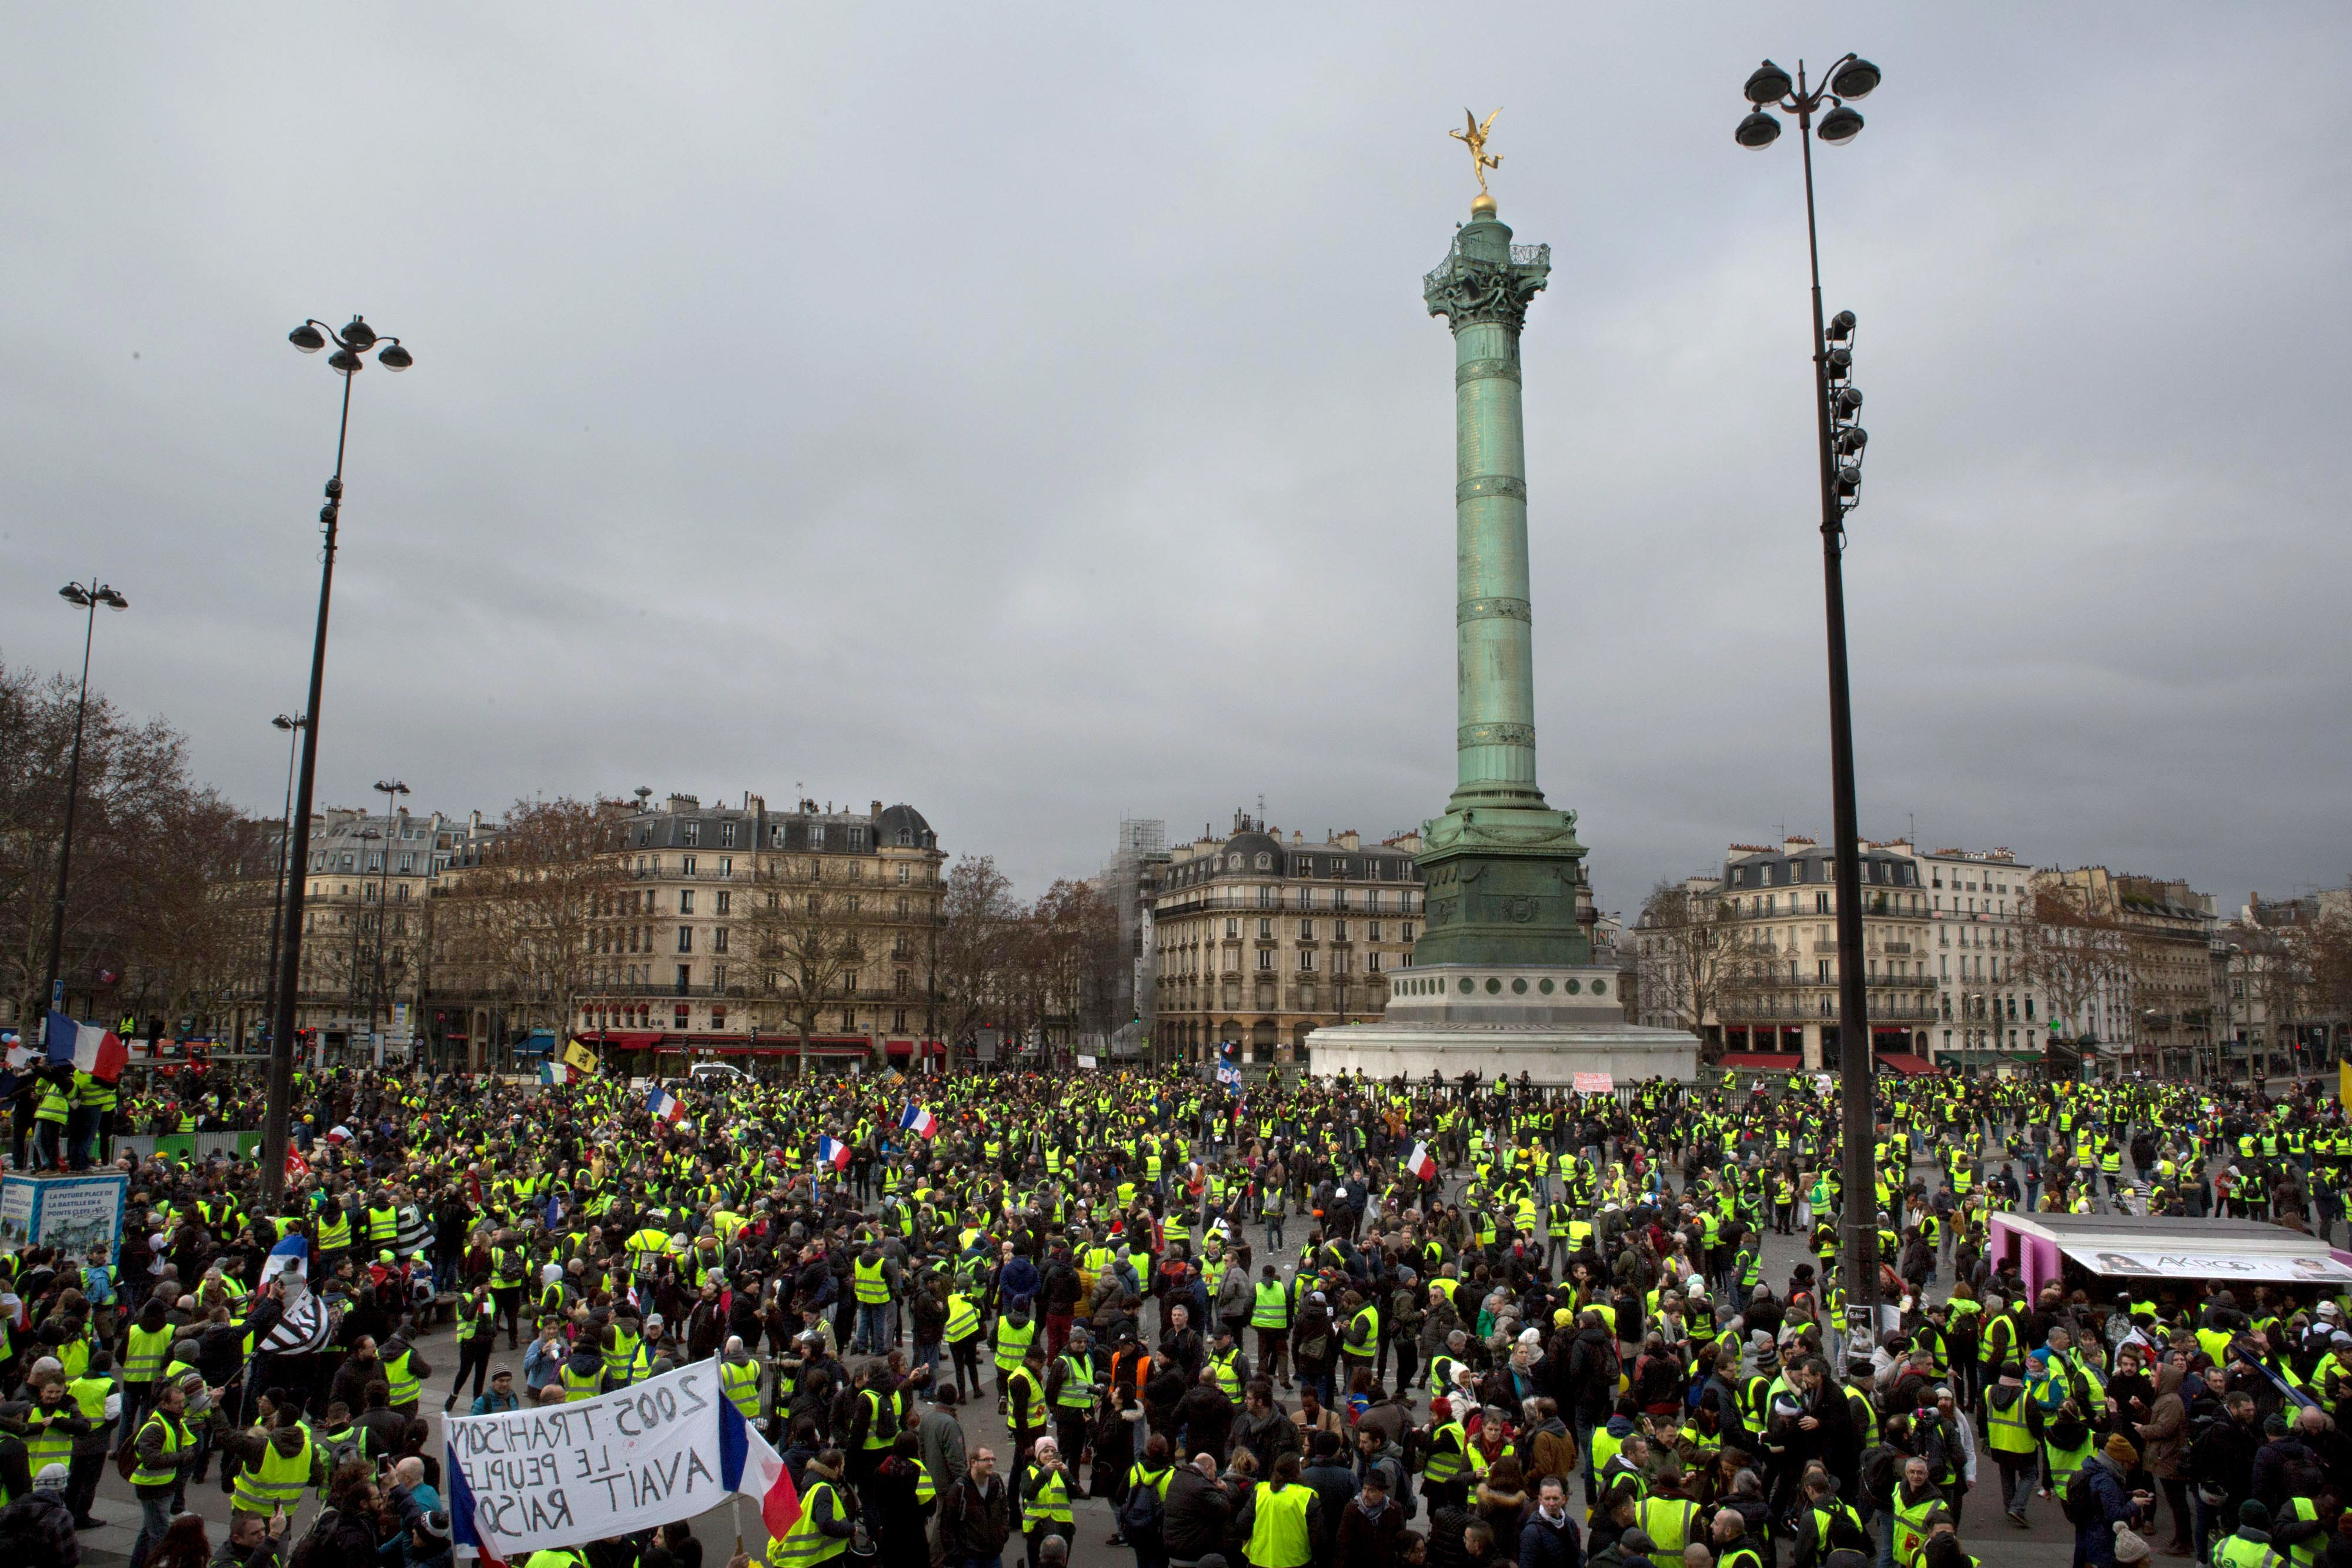 Gilet Jaune protesters march in Paris, France, January 12, 2018. Joe Penney for The Intercept